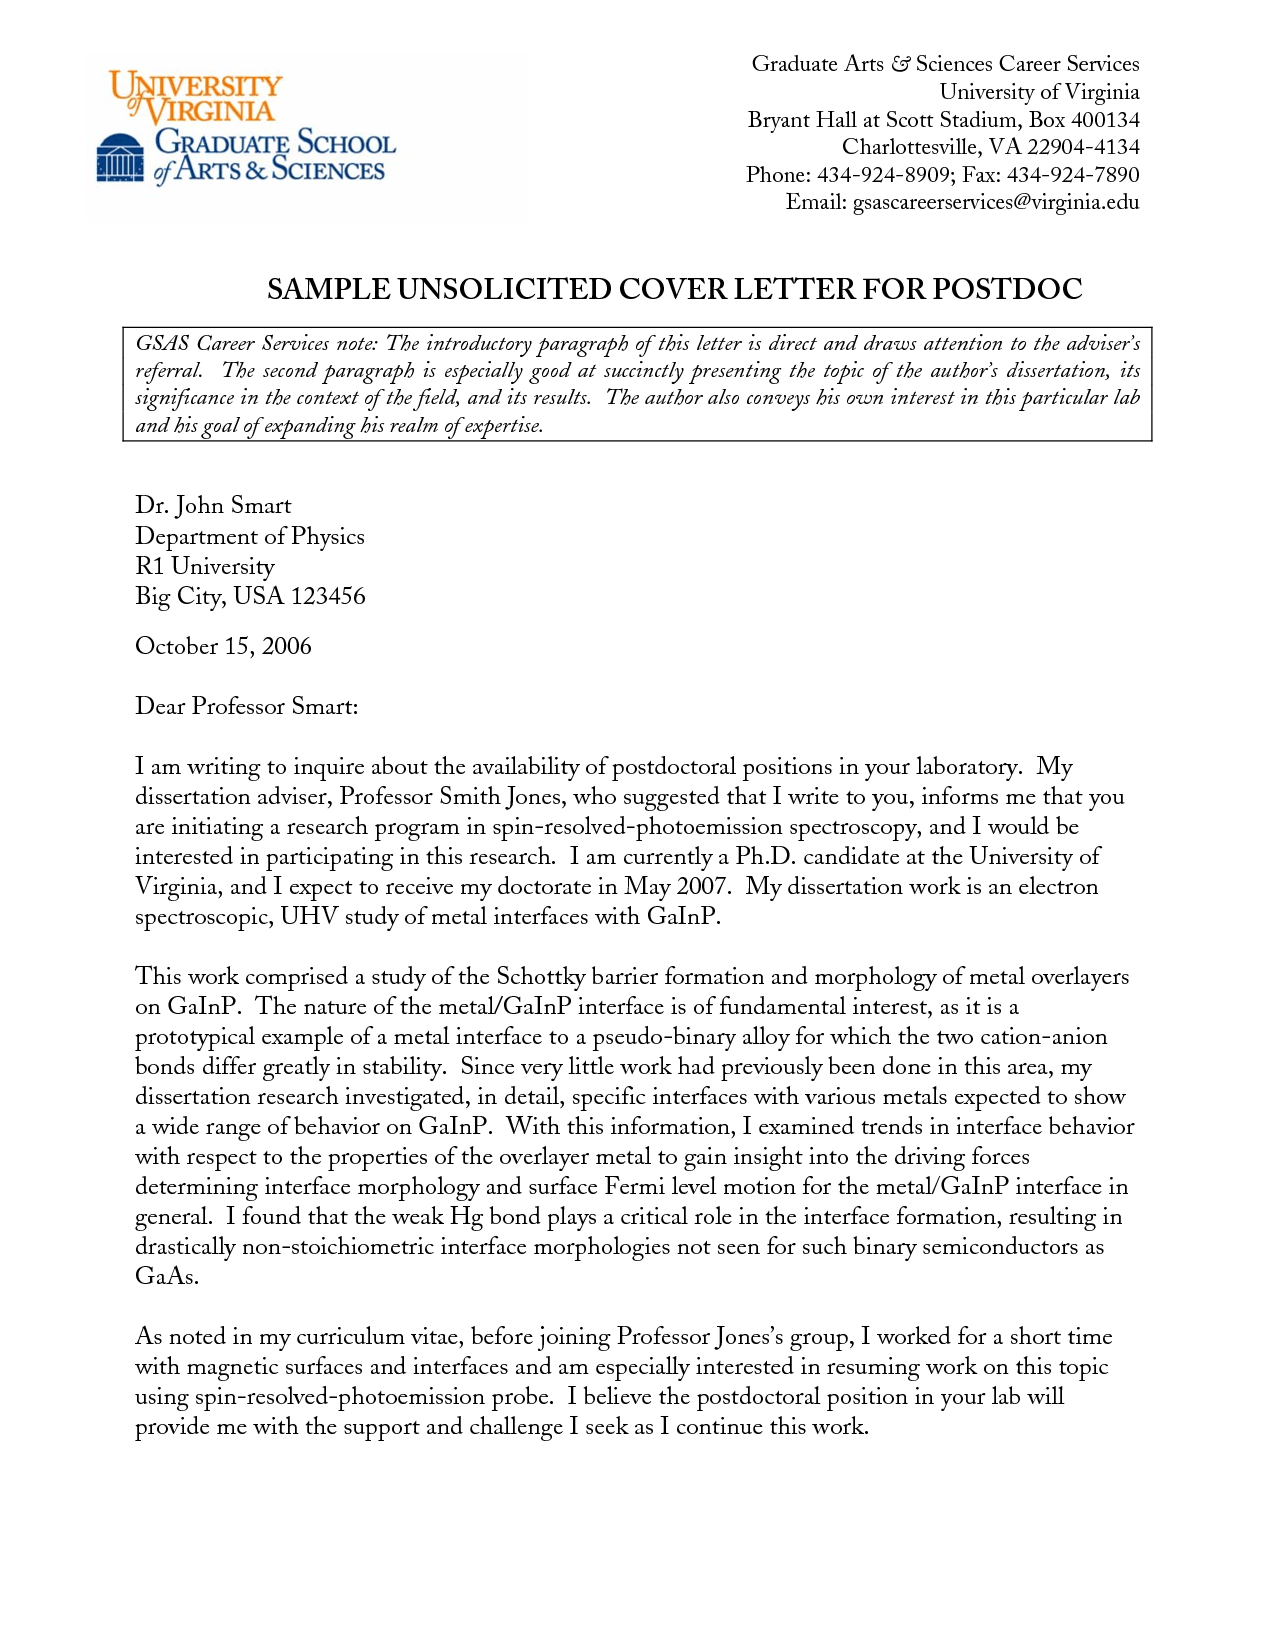 unsolicited cover letter for fresh graduate 28 images